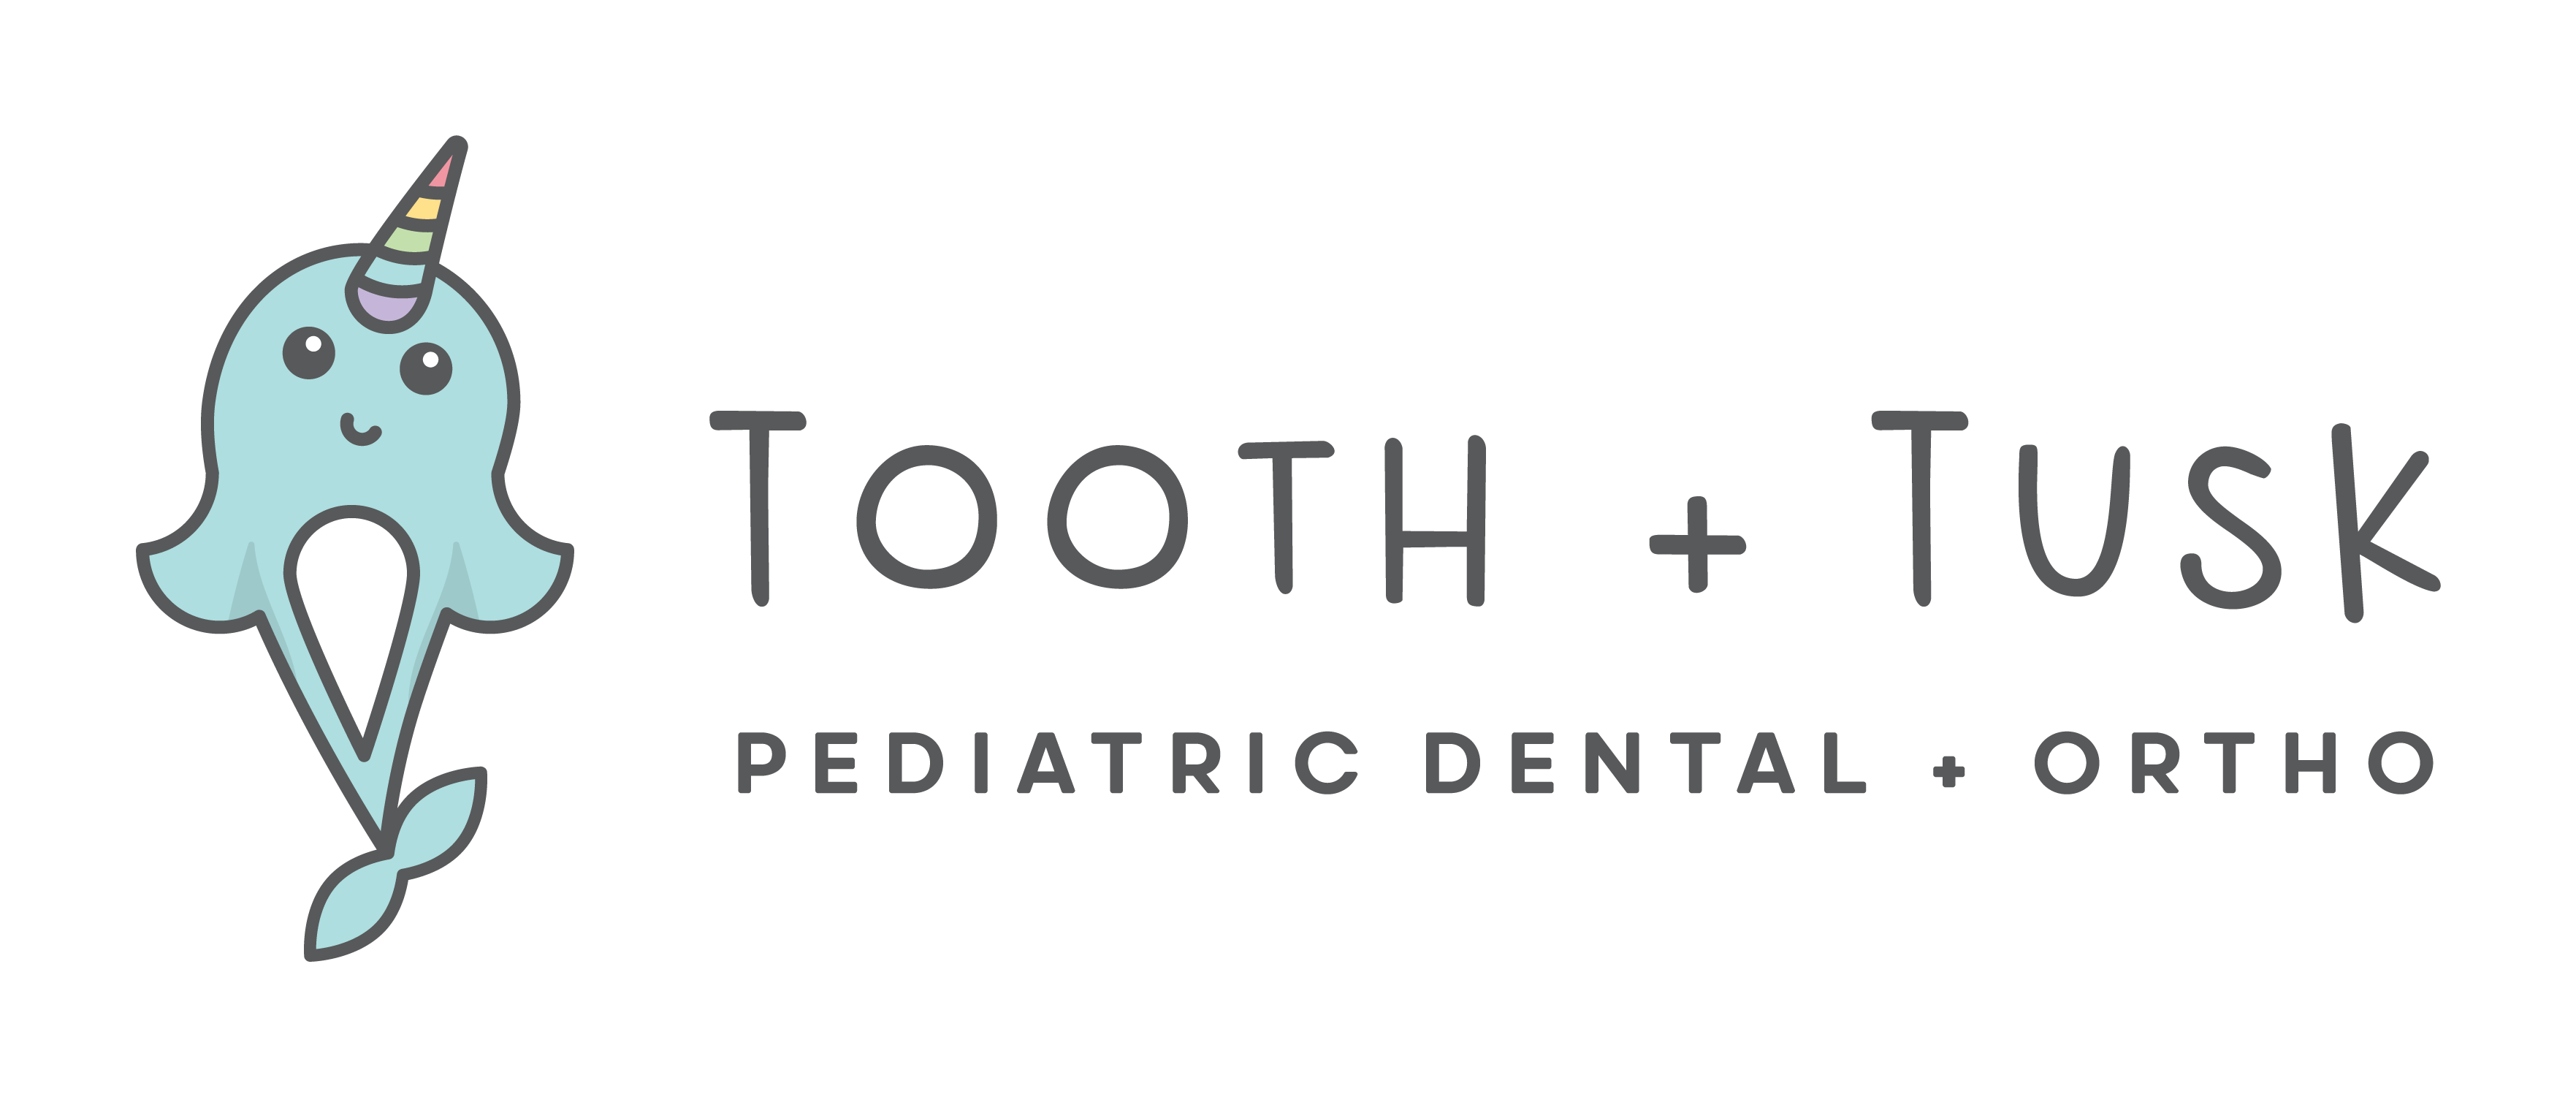 Tooth + Tusk Pediatric Dentistry & Orthodontics